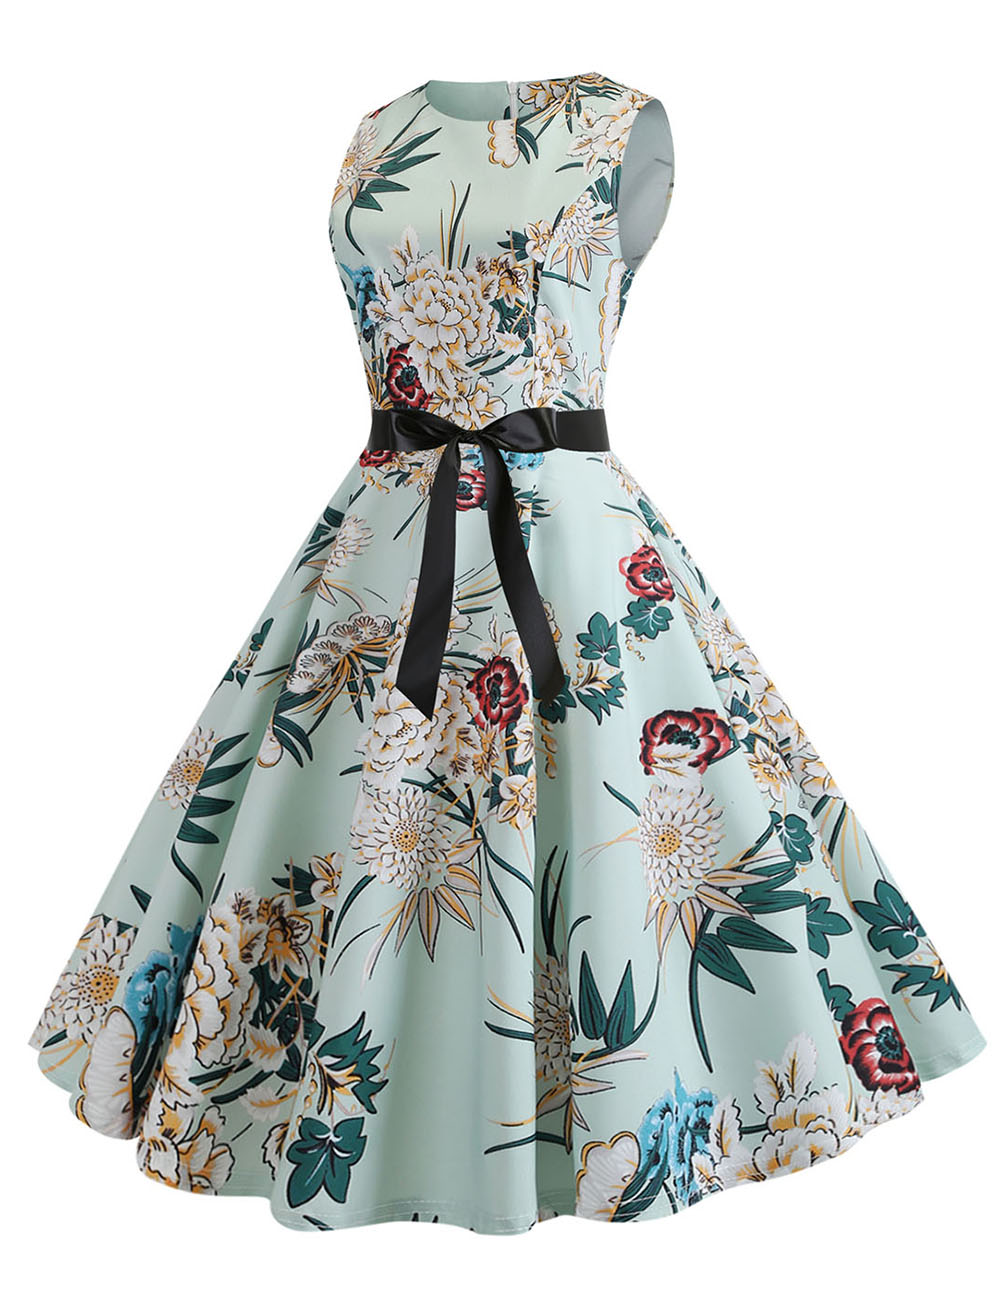 //cdn.affectcloud.com/hexinfashion/upload/imgs/Dress/Midi_Dress/VZ190452-M03/VZ190452-M03-201911055dc120a630149.jpg